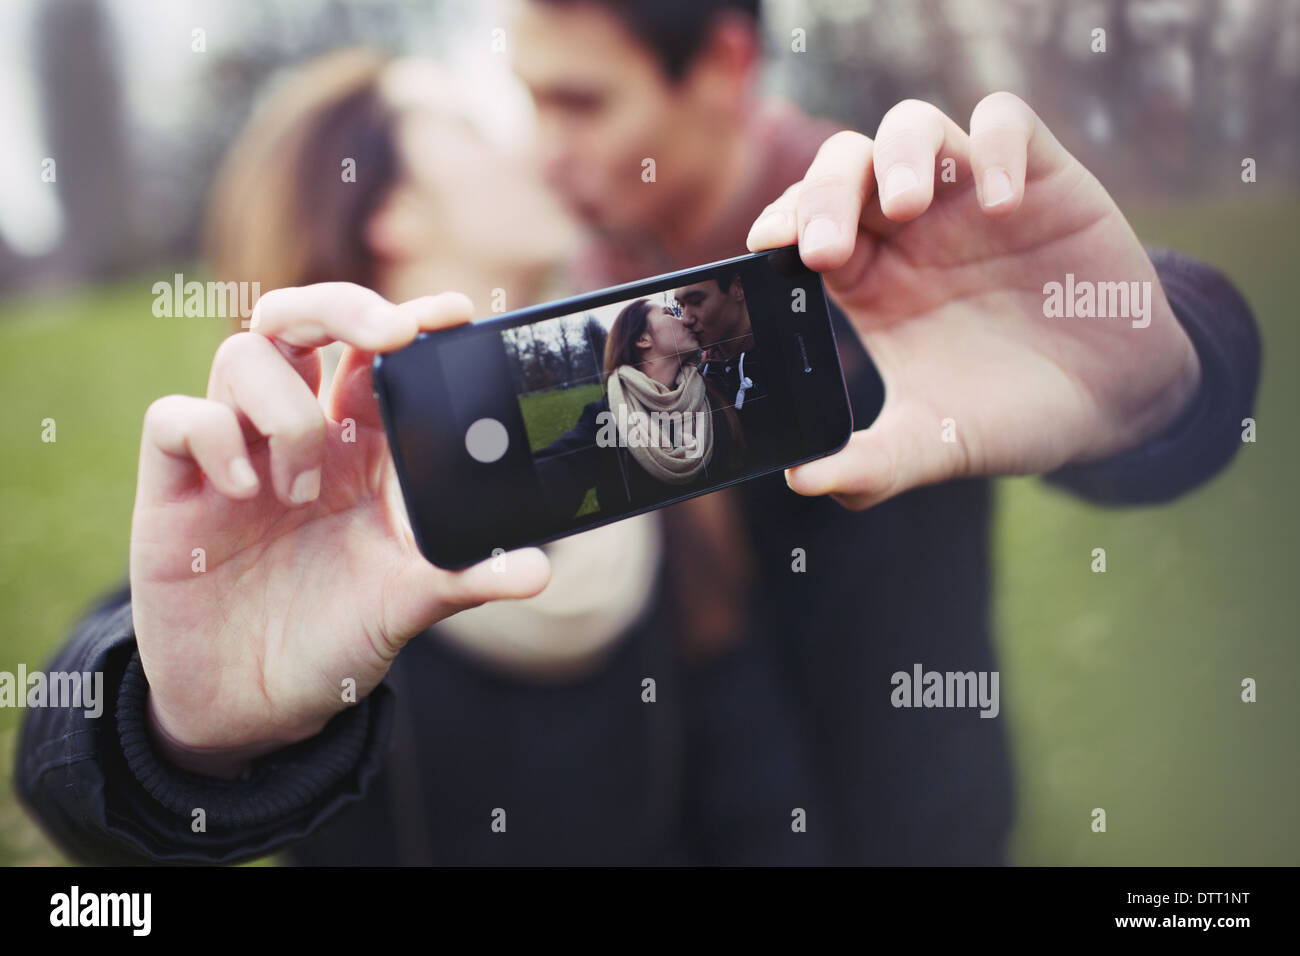 Loving young couple photographing themselves with a mobile phone while kissing at the park. Focus on smart phone. - Stock Image